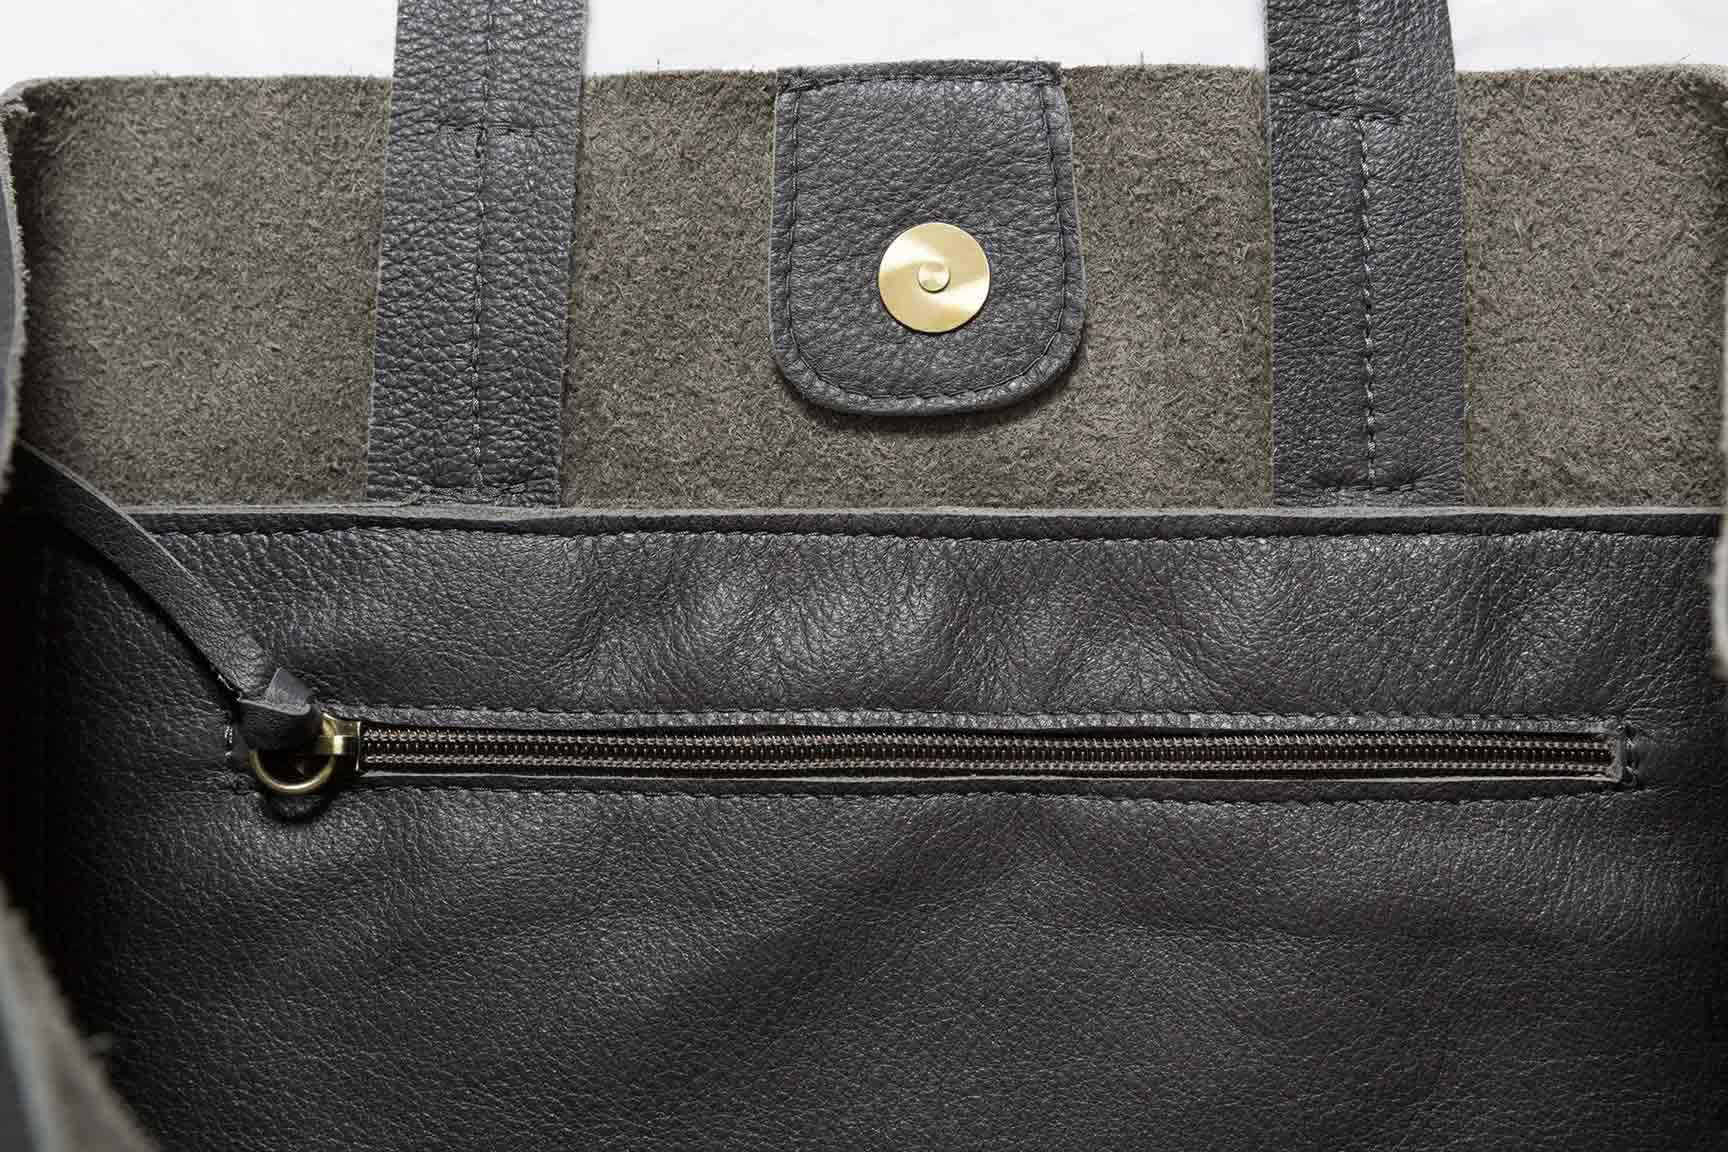 Visuel - Détails - Grand Sac Shopper en Cuir Gris Anthracite - à plat - ordinari.shop